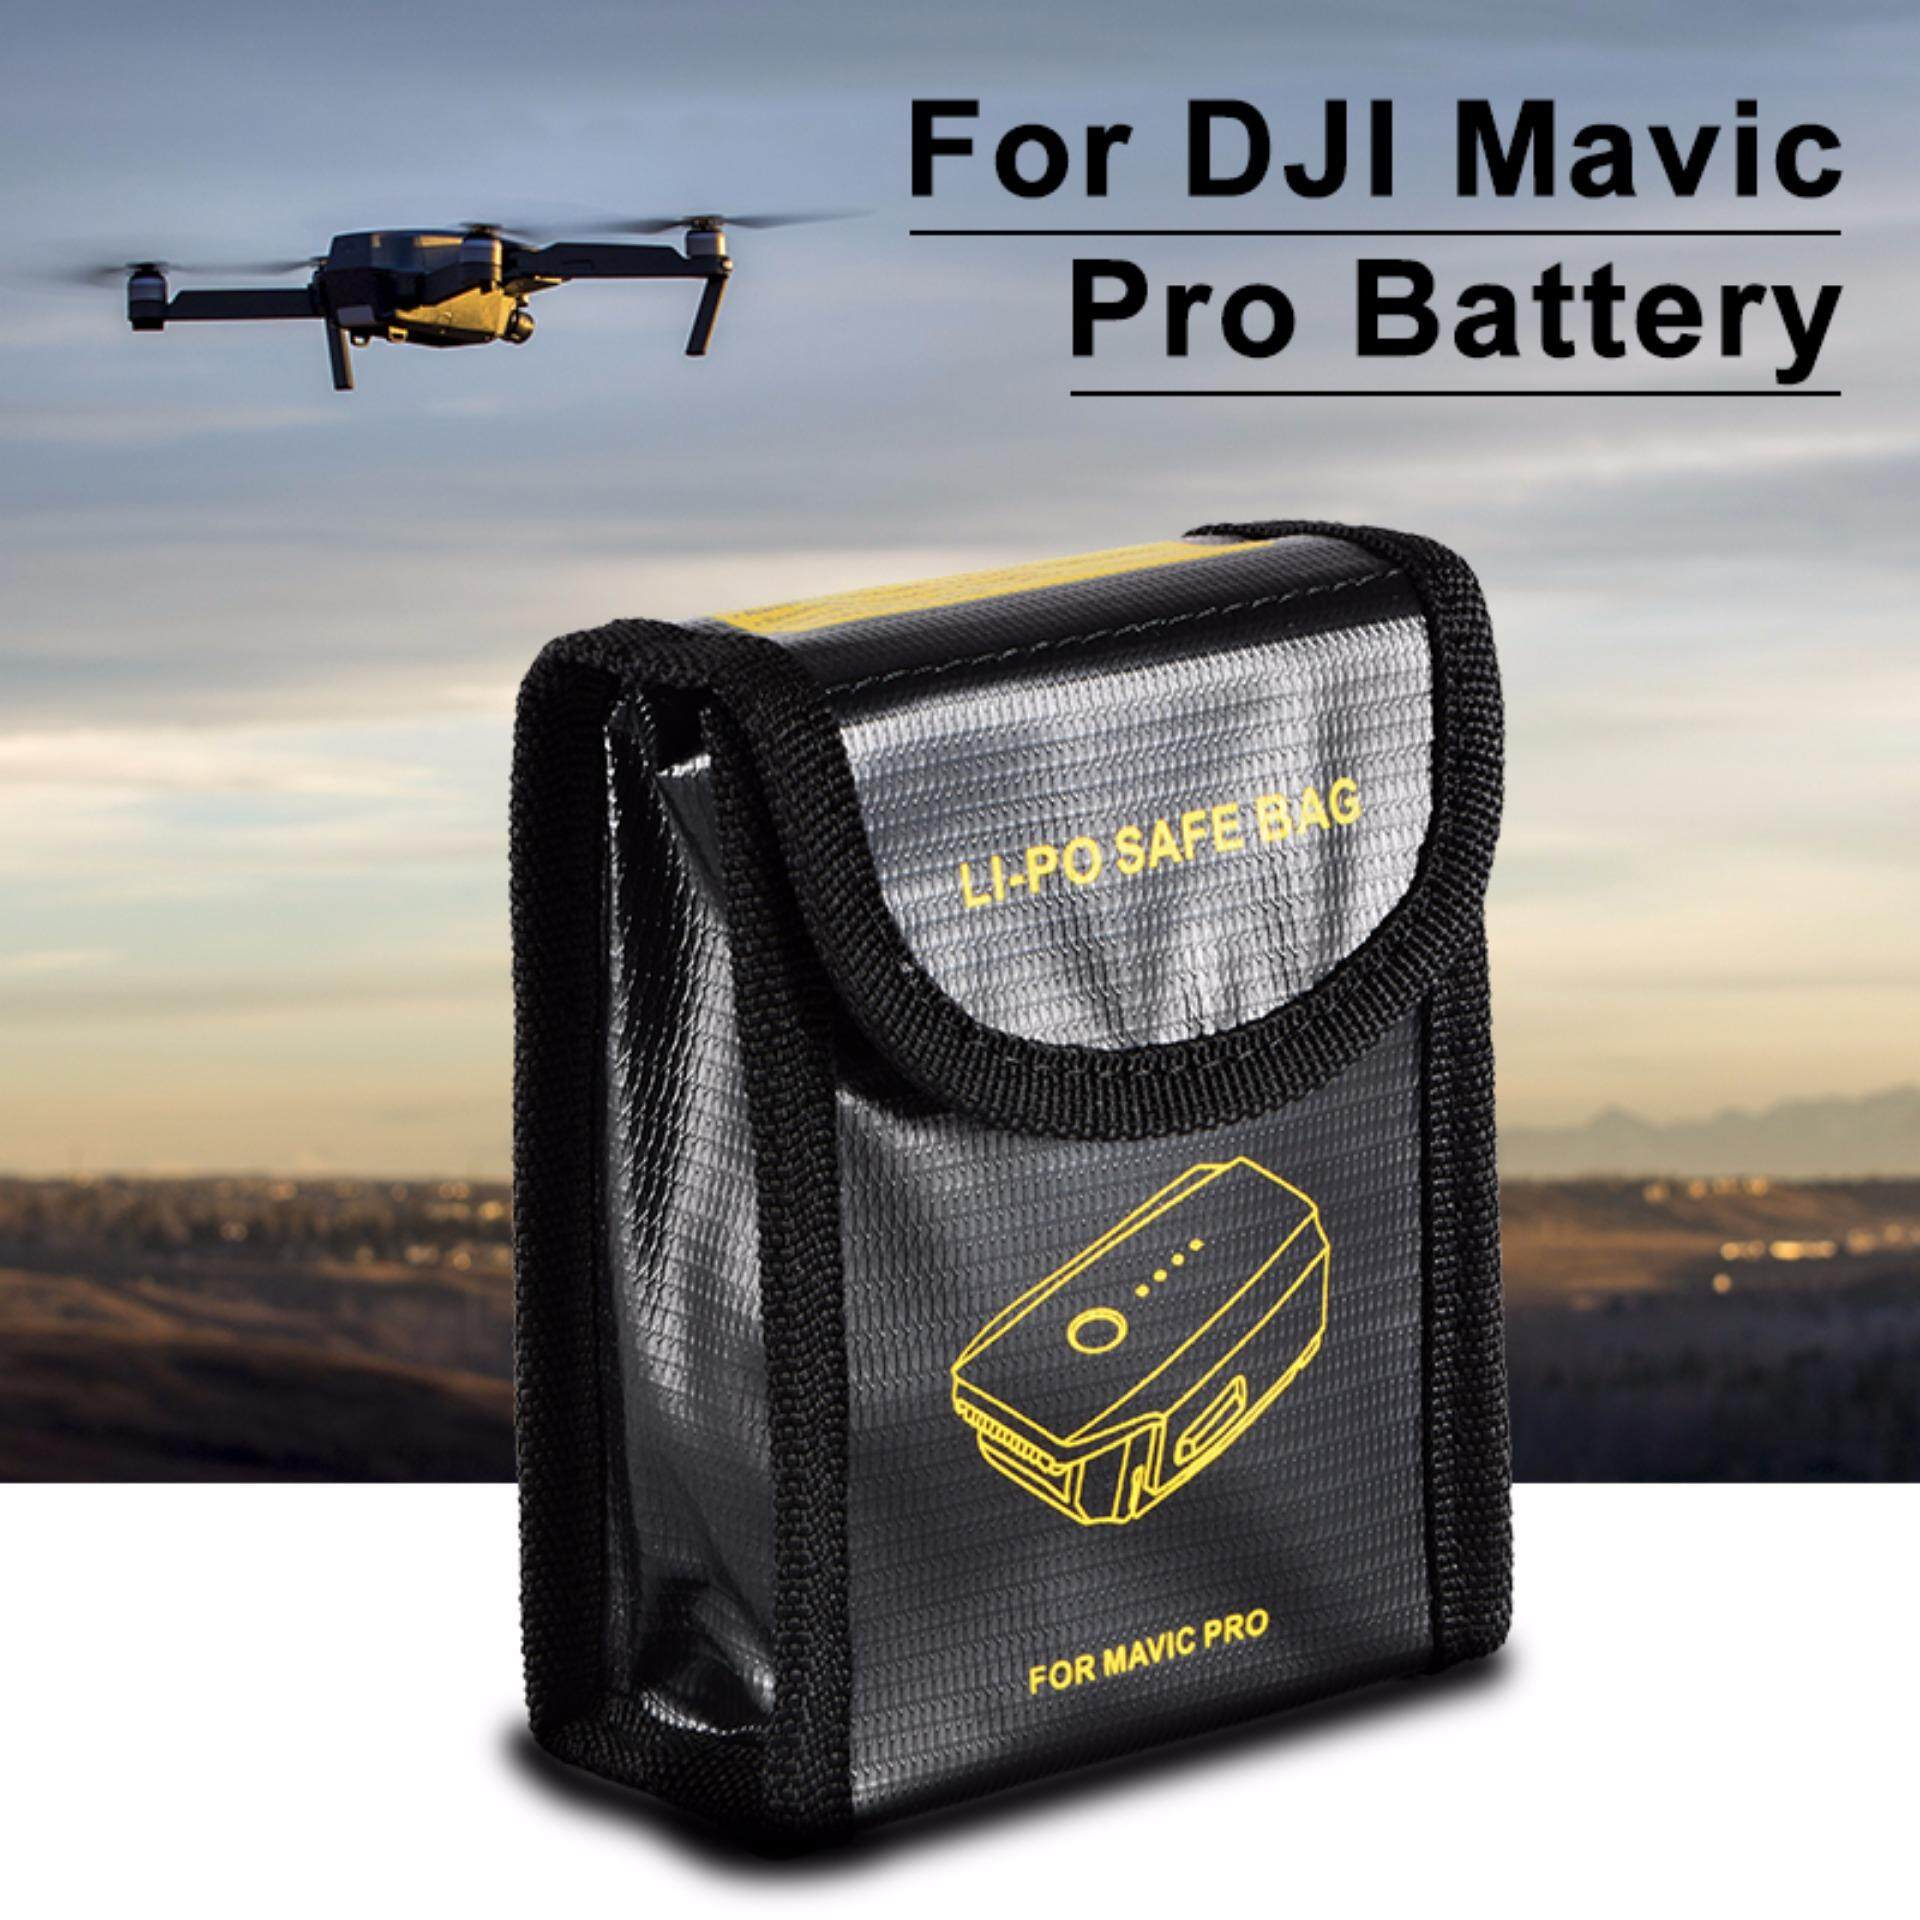 XCSOURCE LiPo Battery Fireproof Pouch Flame Retardant Bag Safety for DJI Mavic Pro RC502